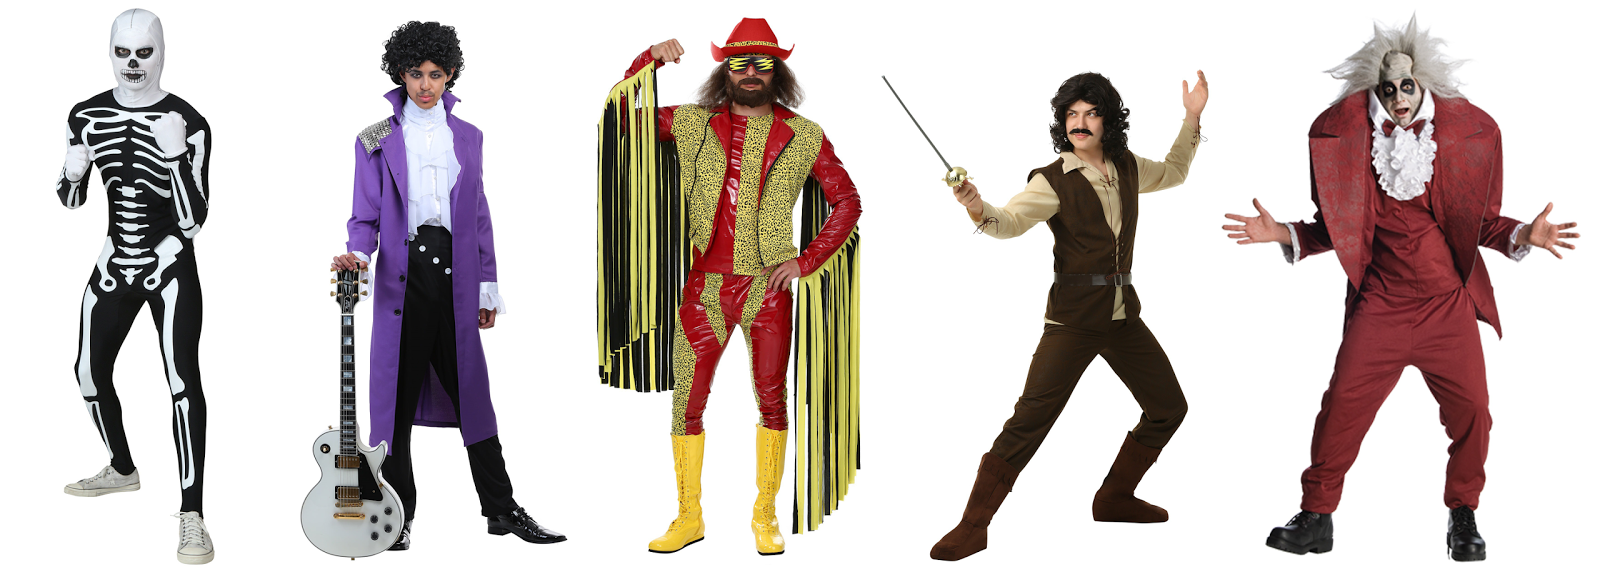 halloween costumes for '80s pop culture junkies - rediscover the 80s